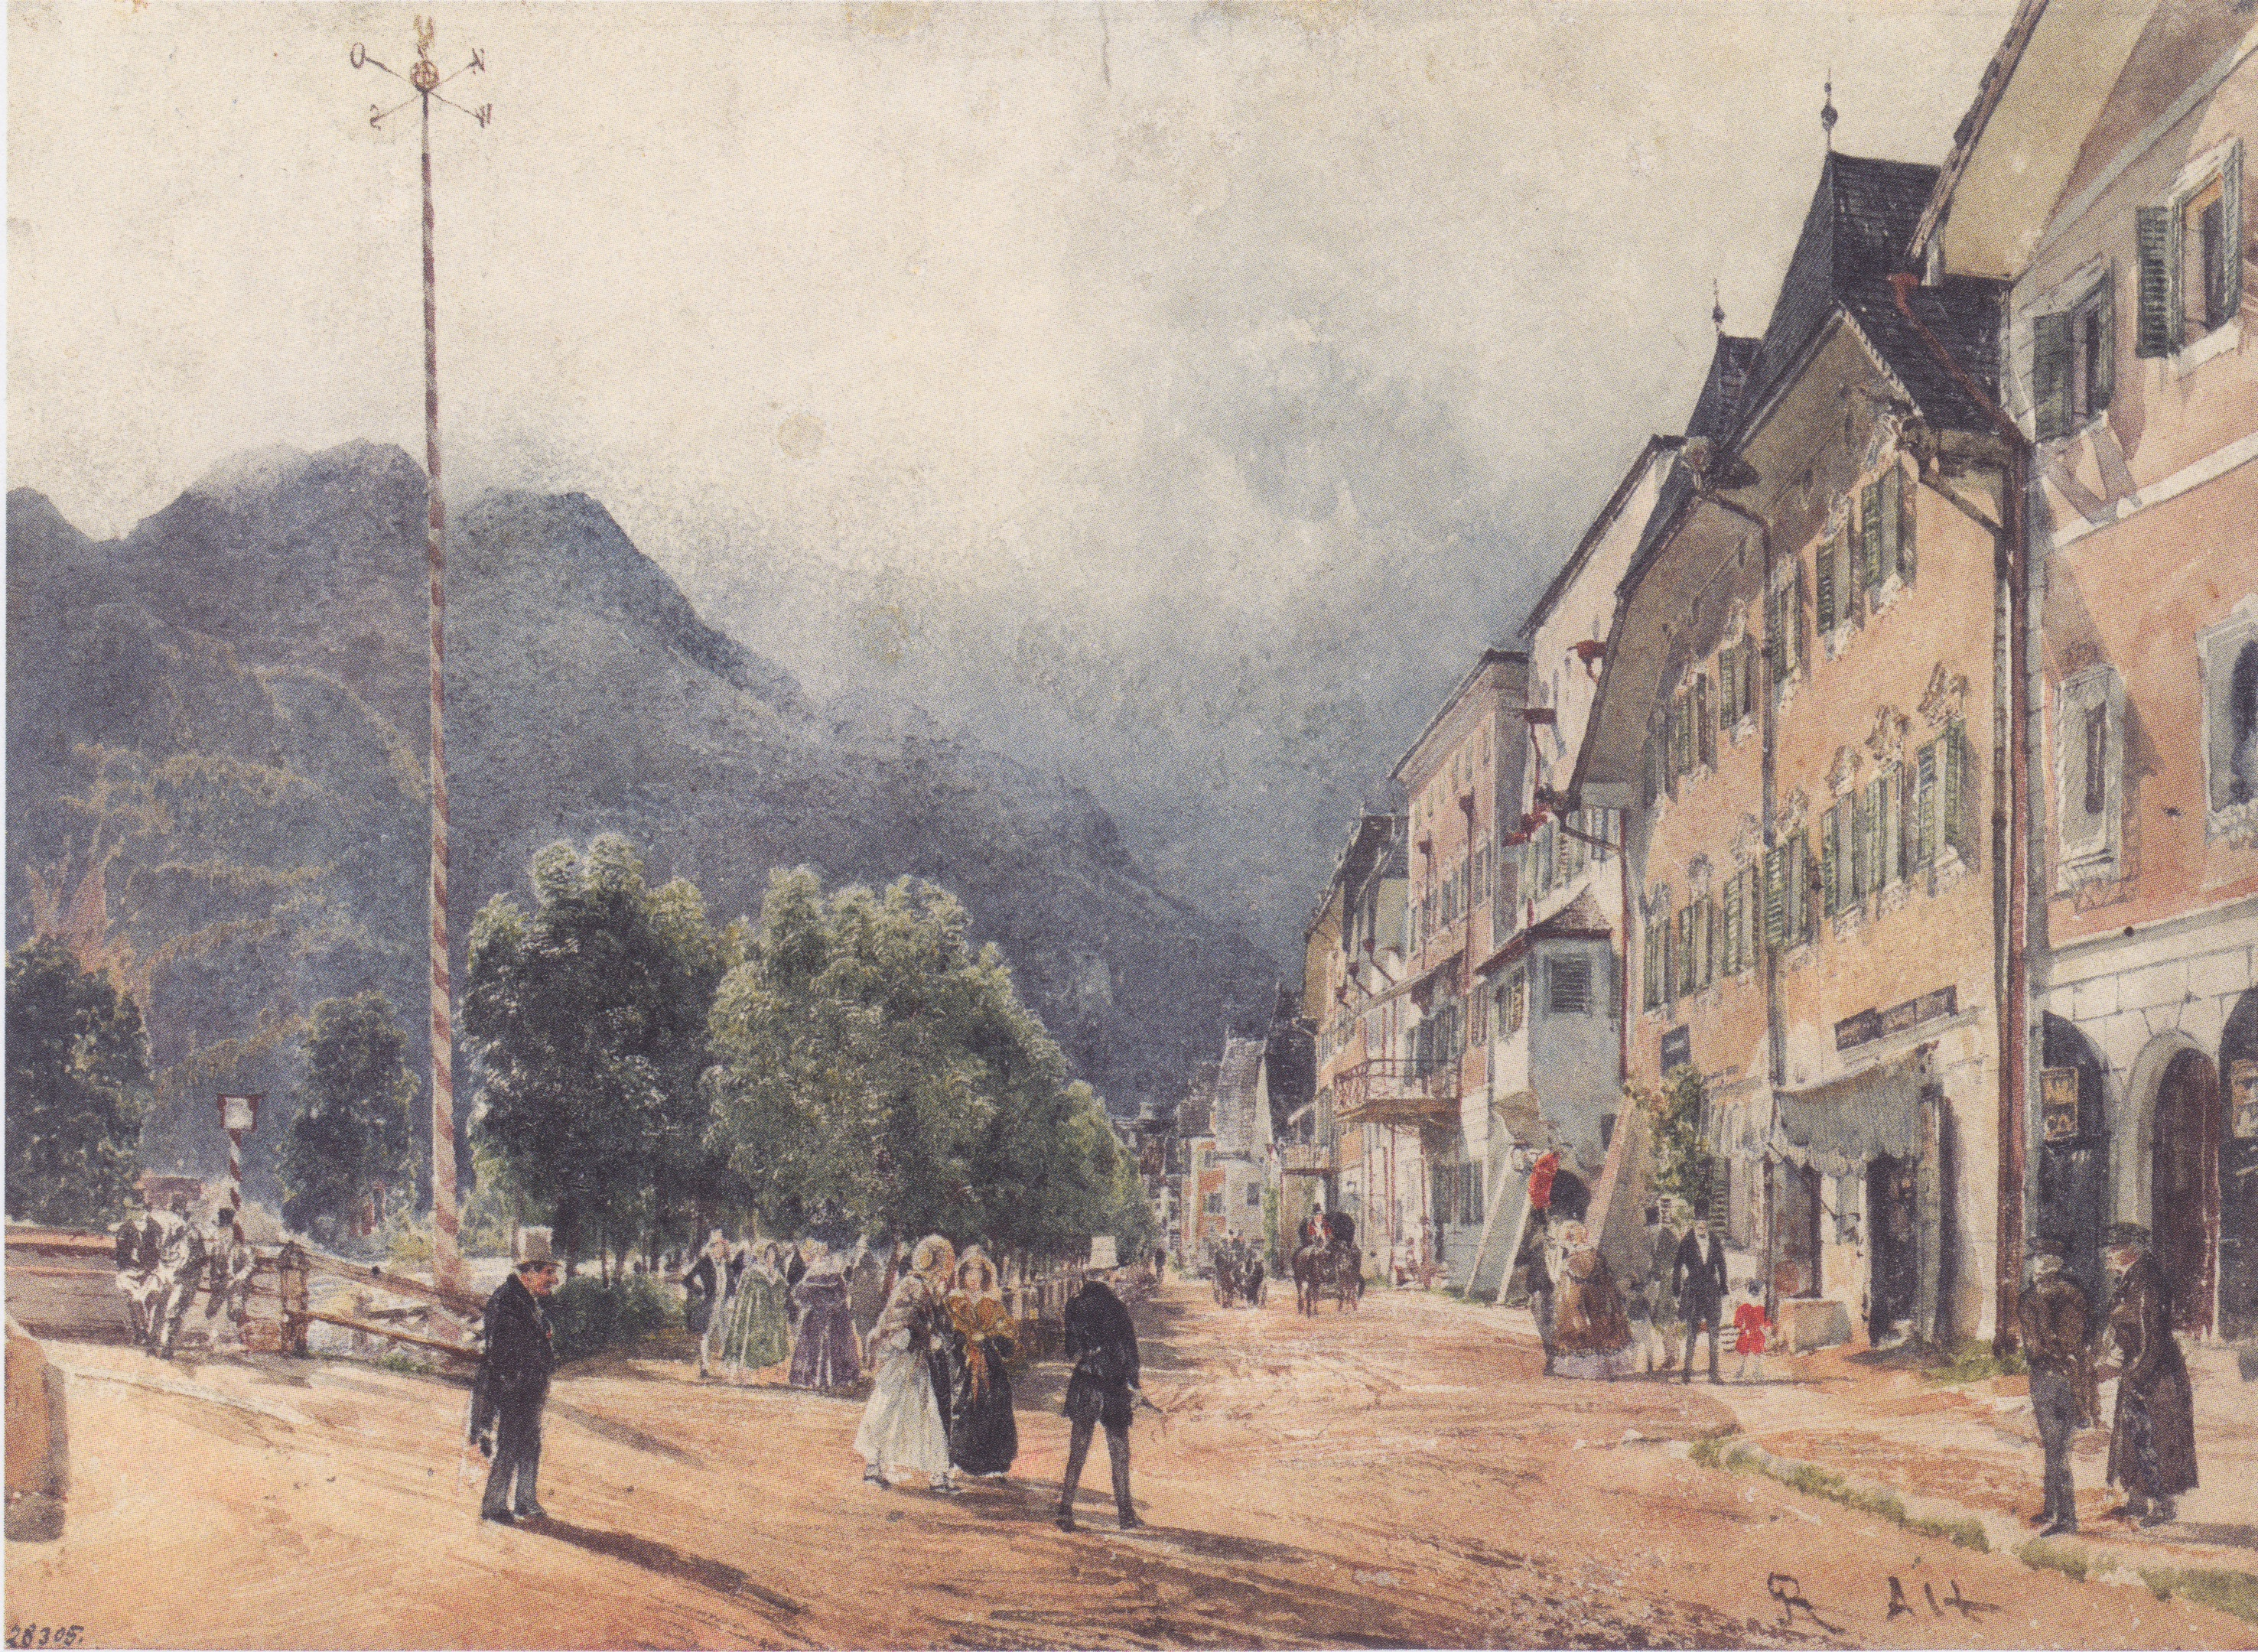 The Esplanade in Ischl, 1840